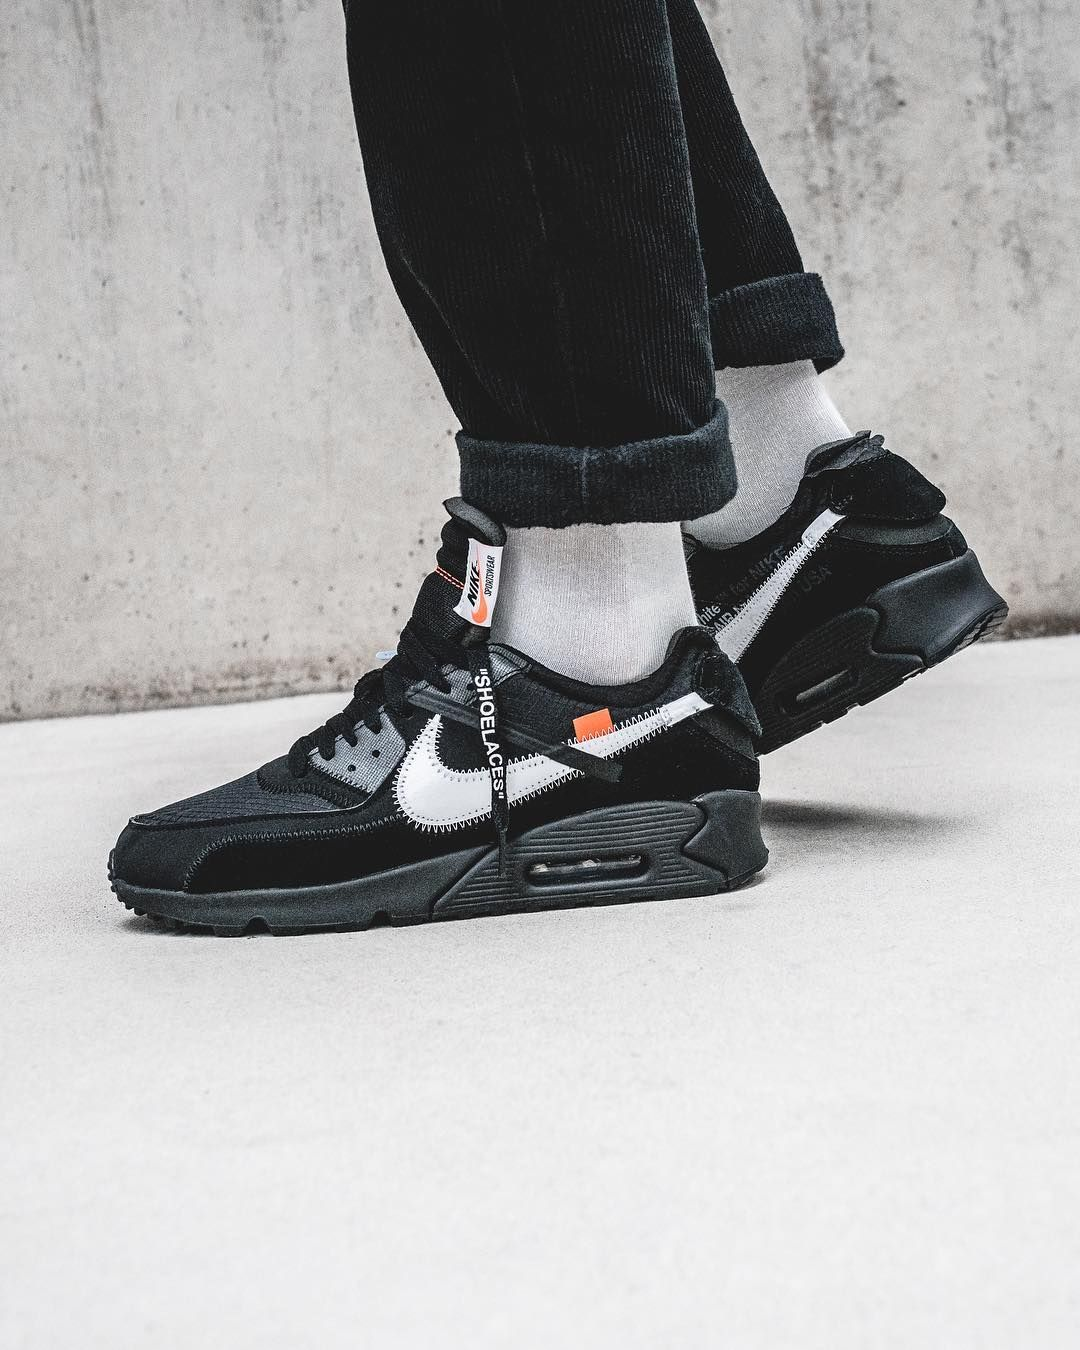 Nike x Off White Air Max 90 'Desert Ore' and 'Black' | Air